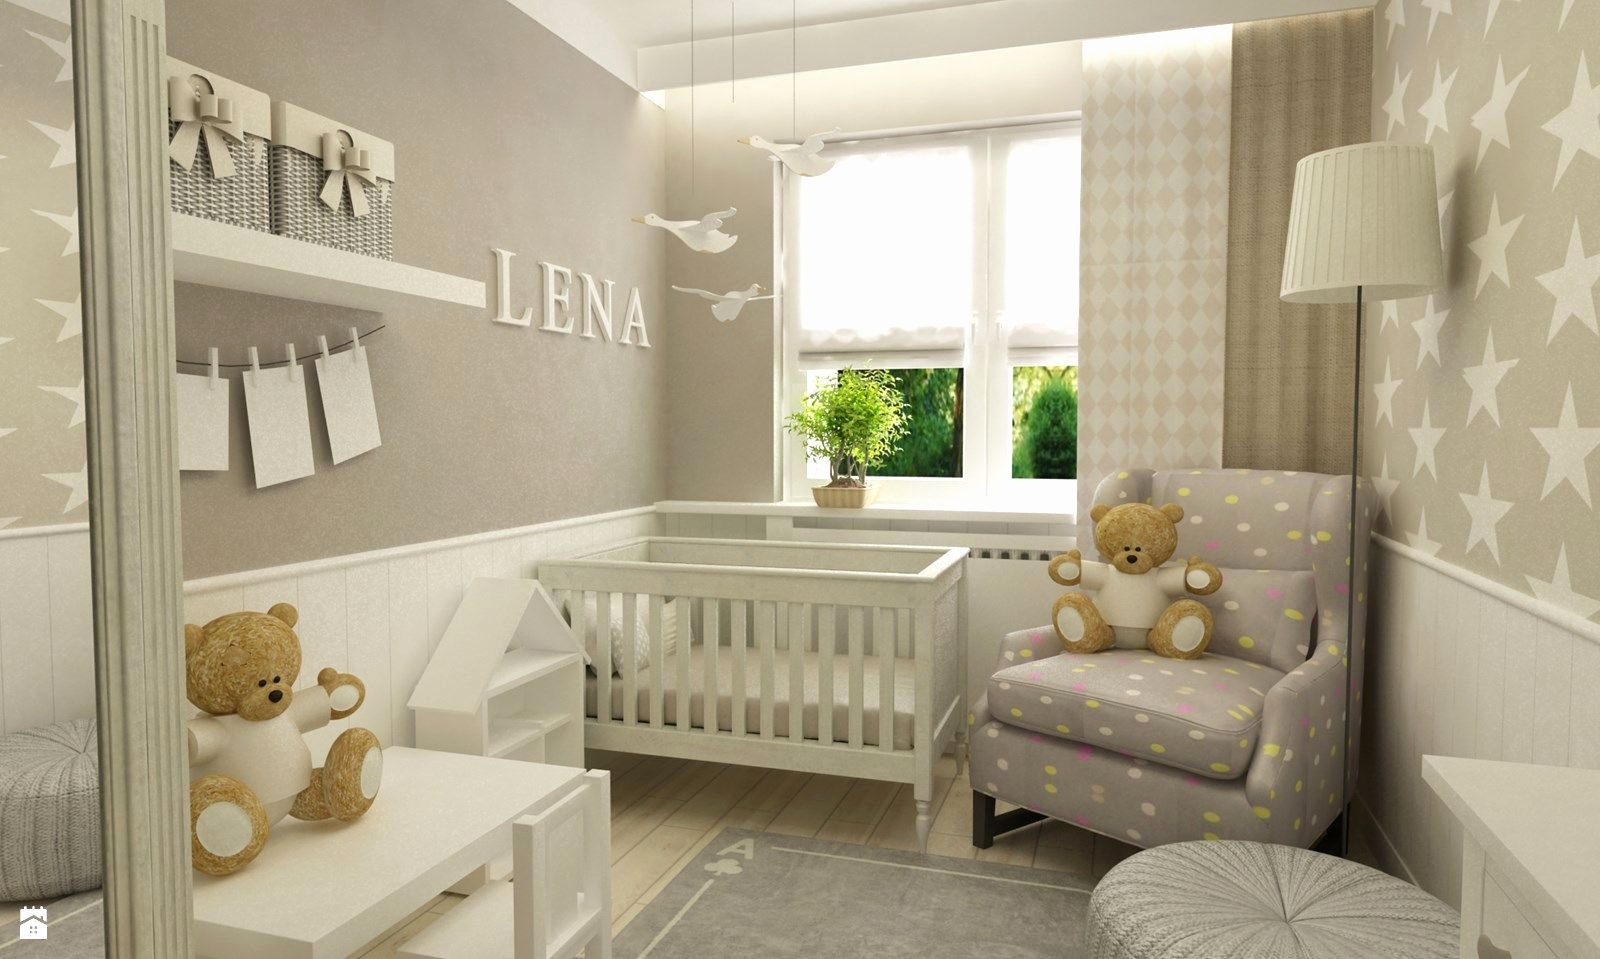 Kids Room Wall Design Make Your Own Luxury Kids Room Wall Ideas Inspir Nursery Wall Design Do It Nursery Room Design Baby Room Colors Children Room Boy